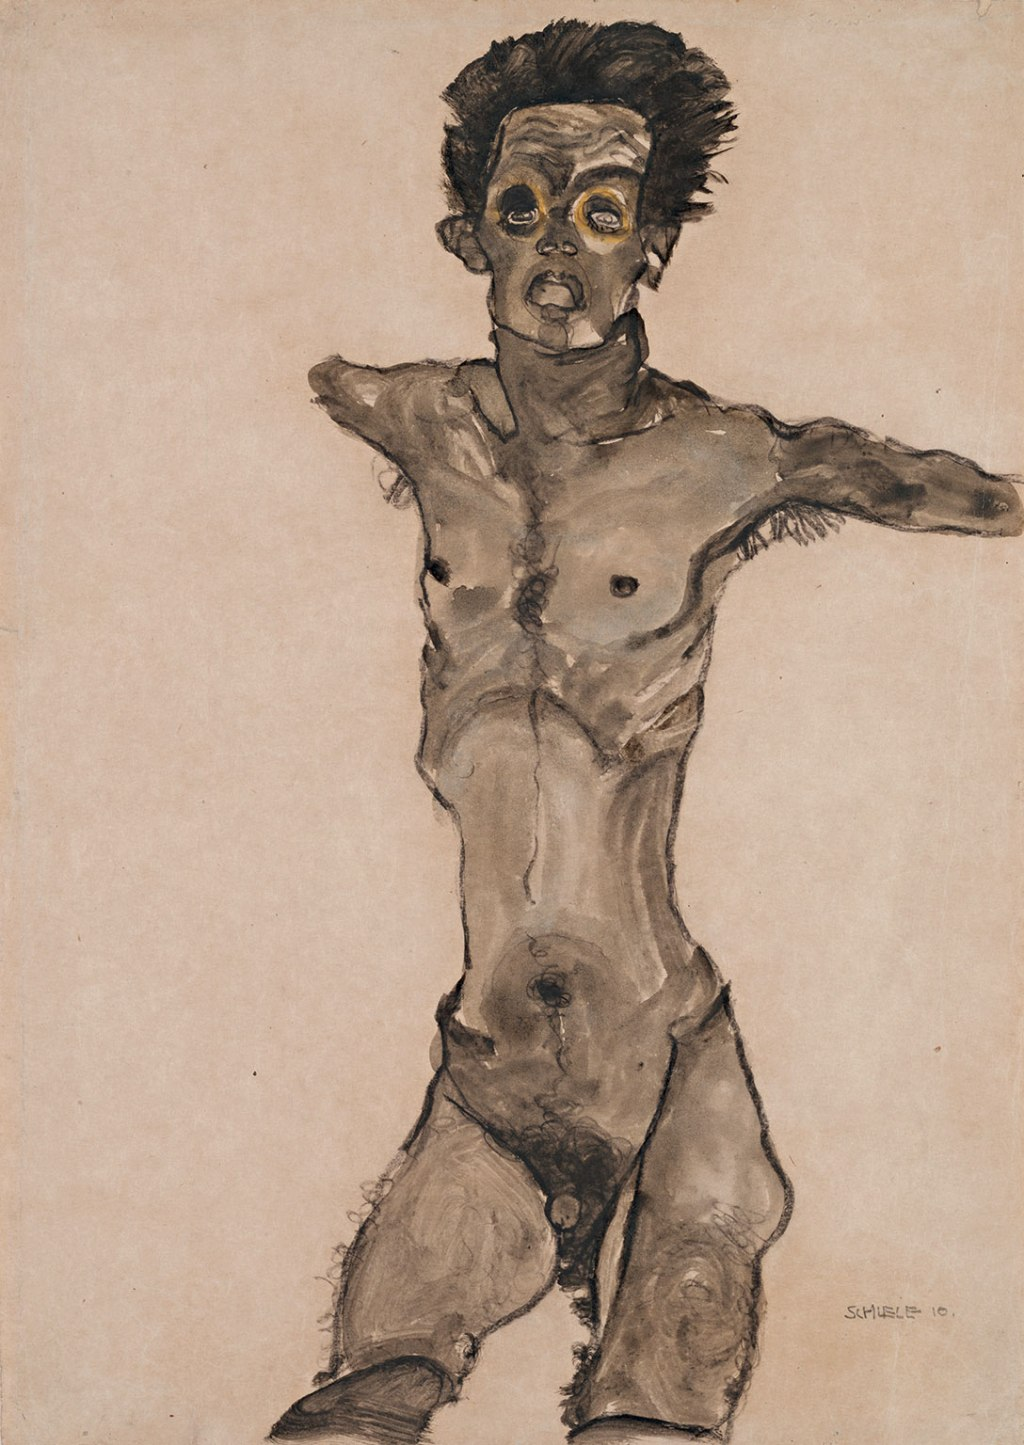 Nude Self-Portrait in Gray with Open Mouth, 1910